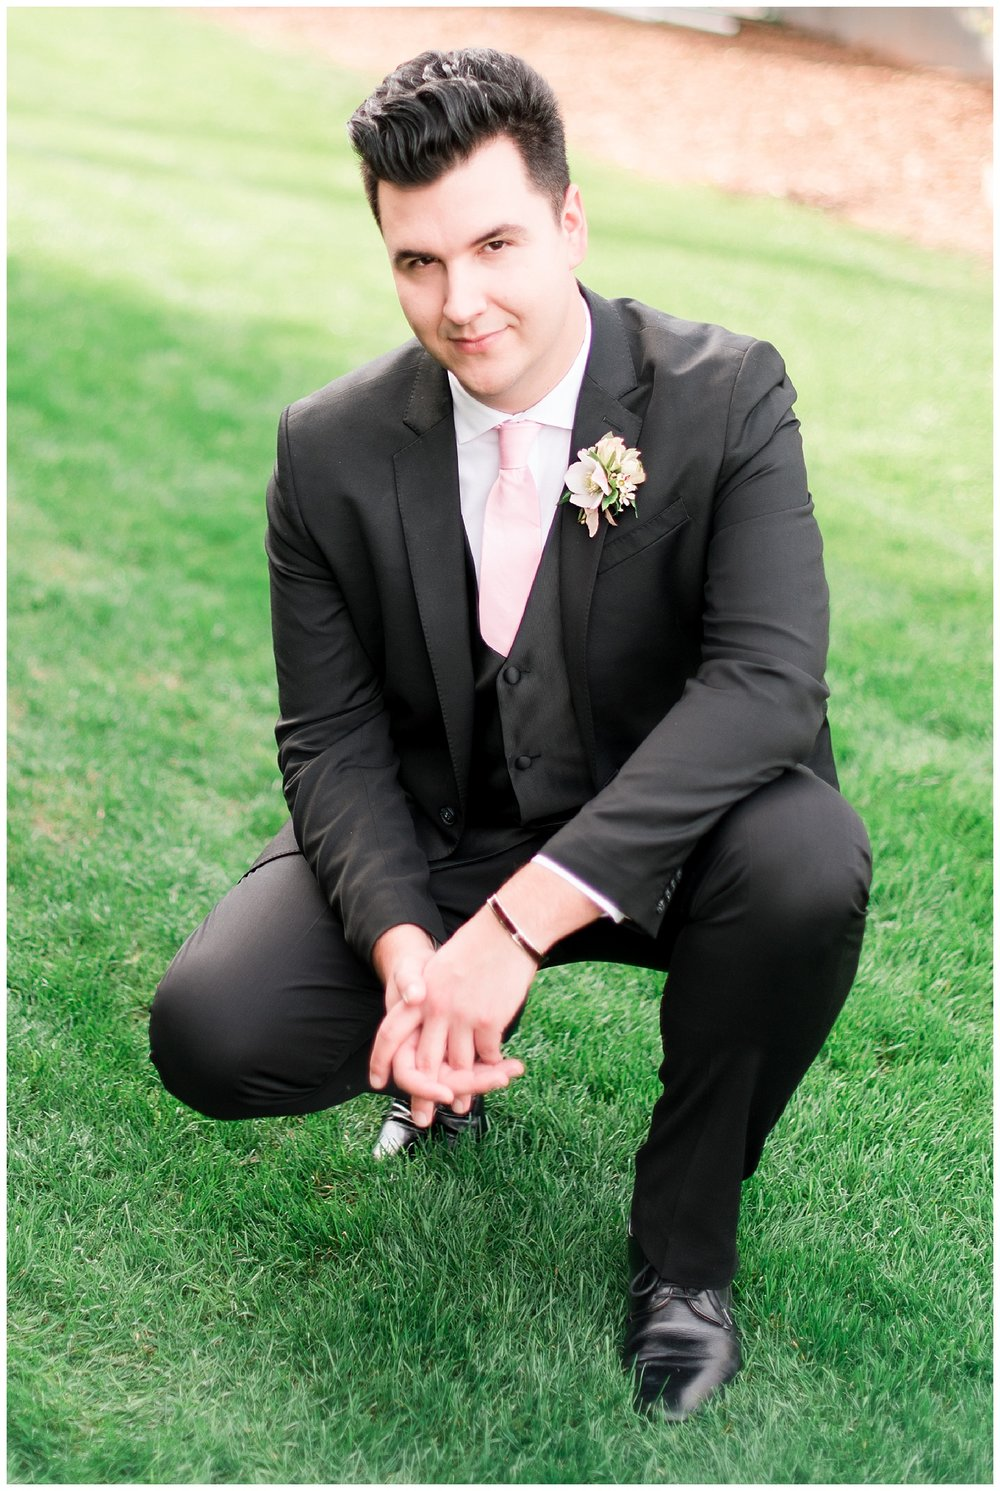 Groom Slaven wearing his own fitted and dashing suit, as well as a boutonniere made with love by Garden Gate Flowers, photographed at Gather Estate in Mesa, Arizona.